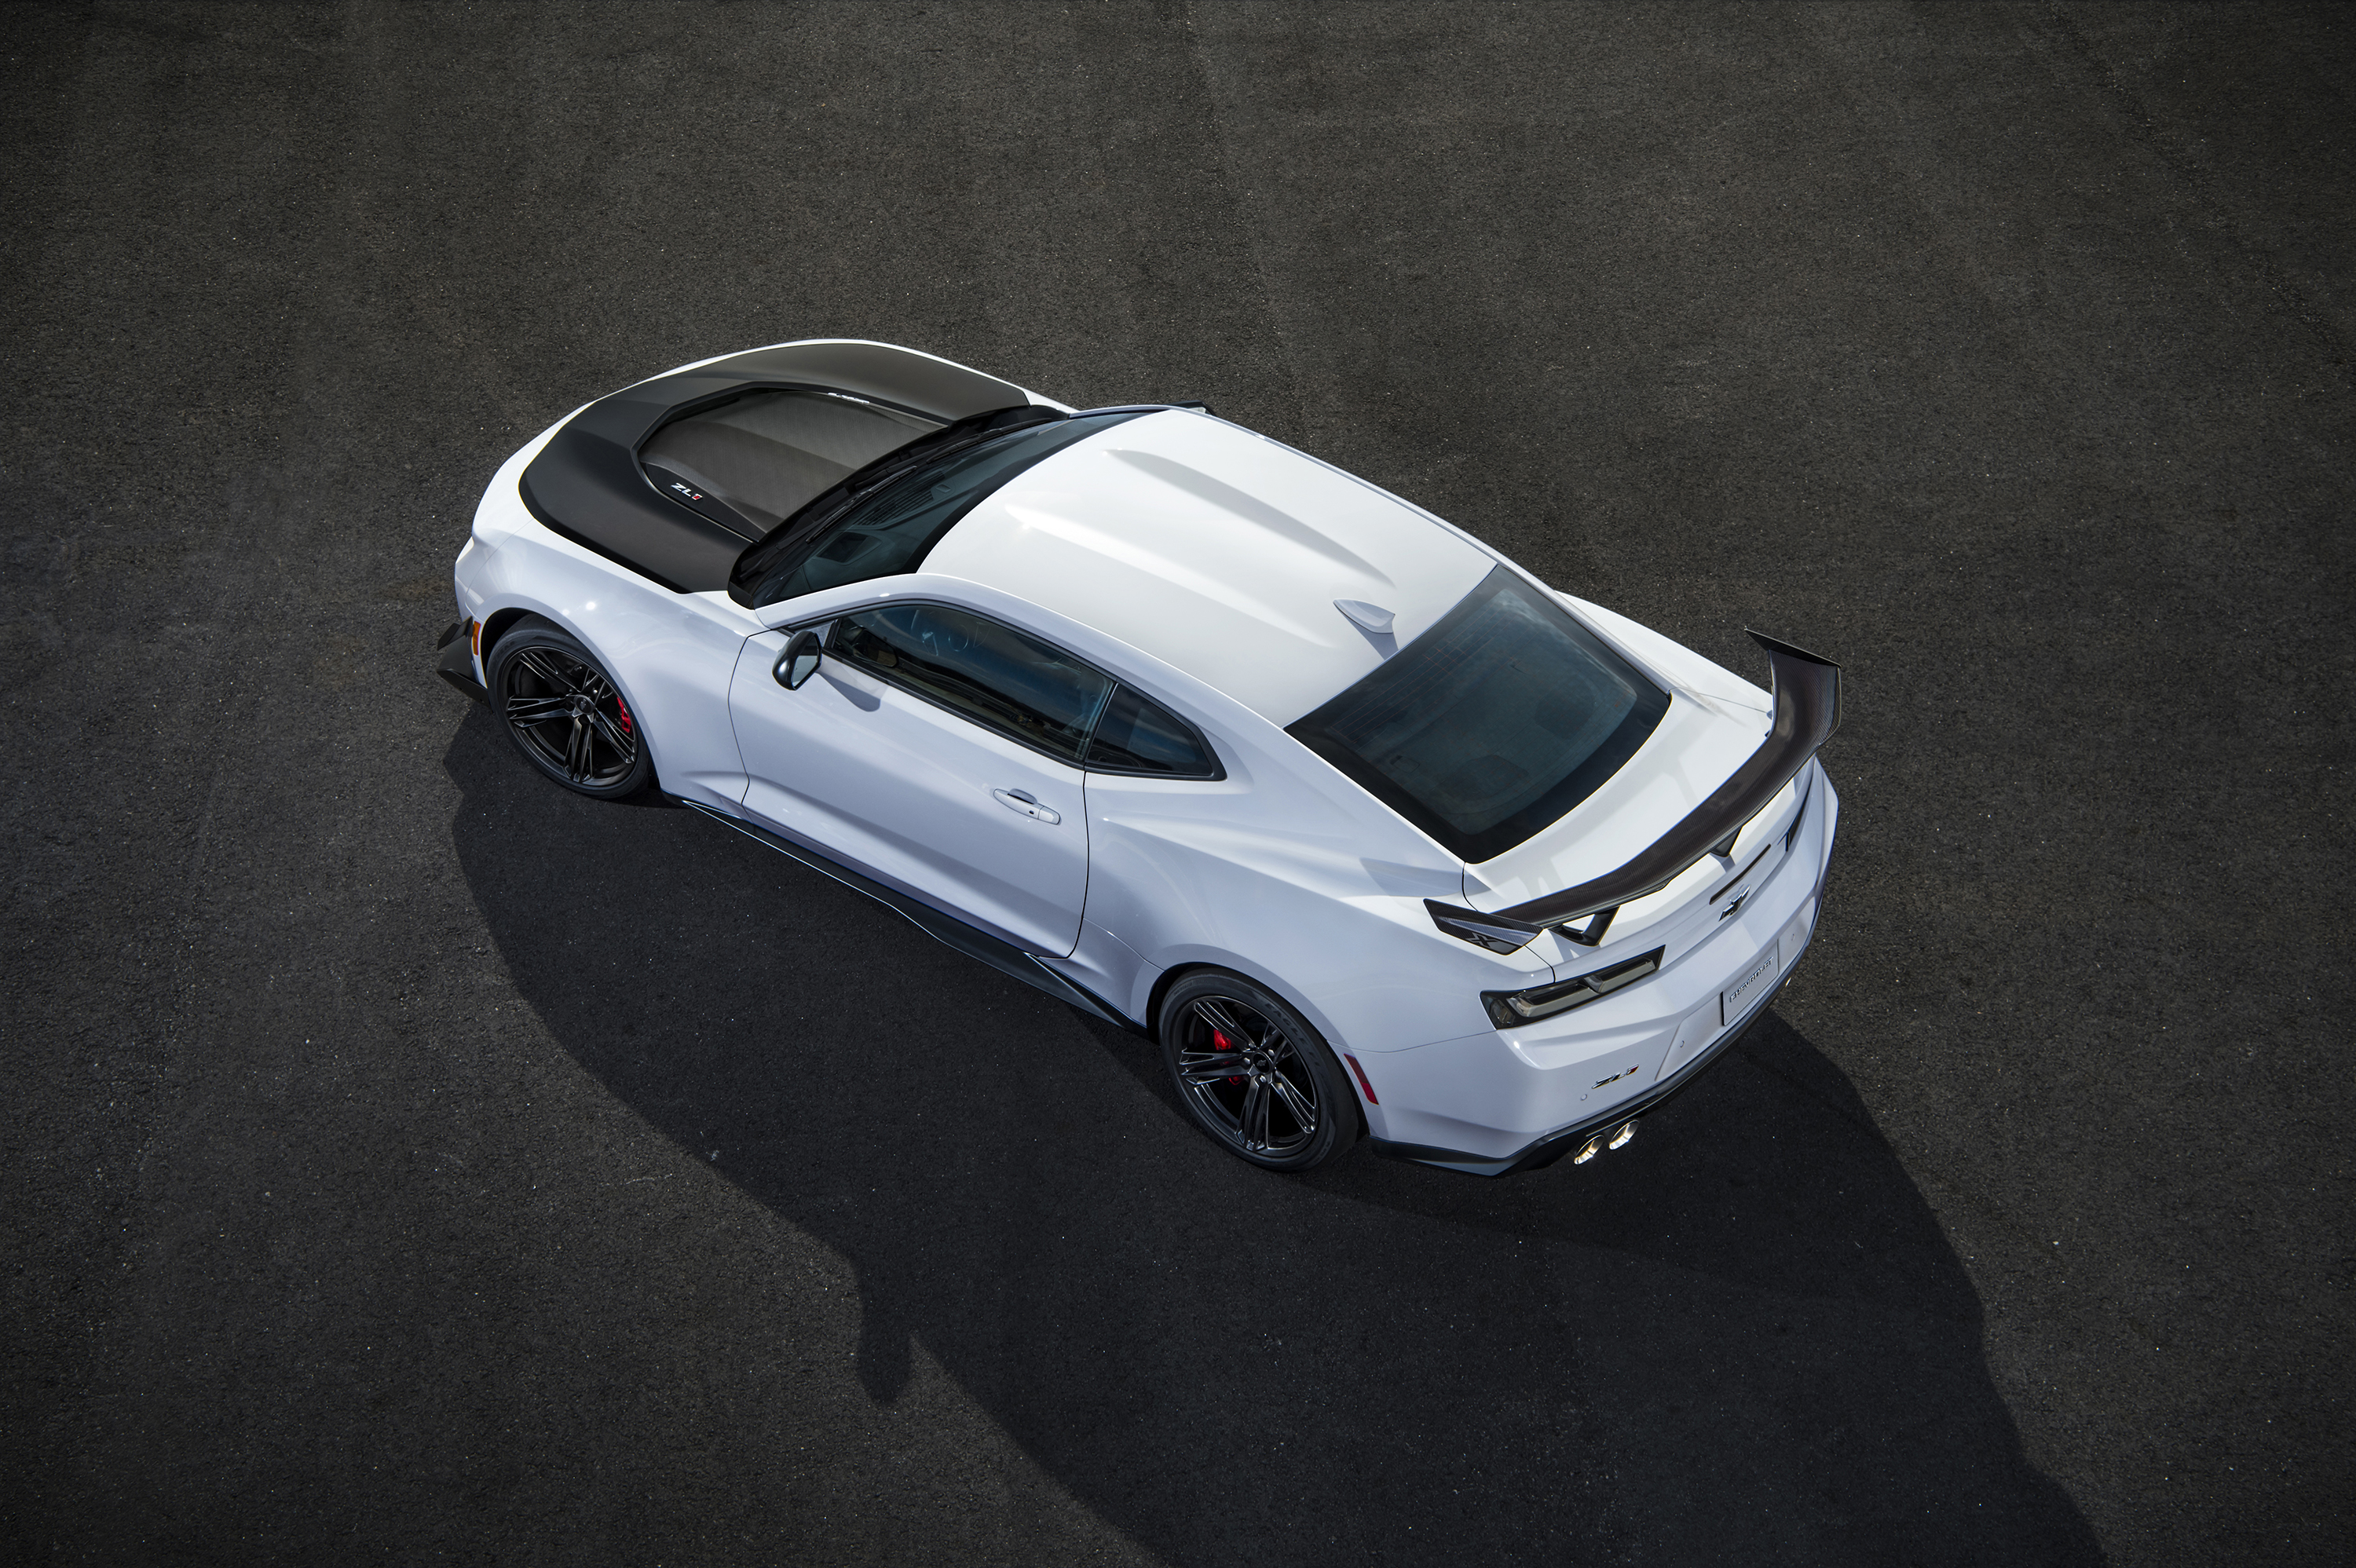 The Giant 2018 Chevrolet Camaro ZL1 1LE Photo Gallery - The Drive on